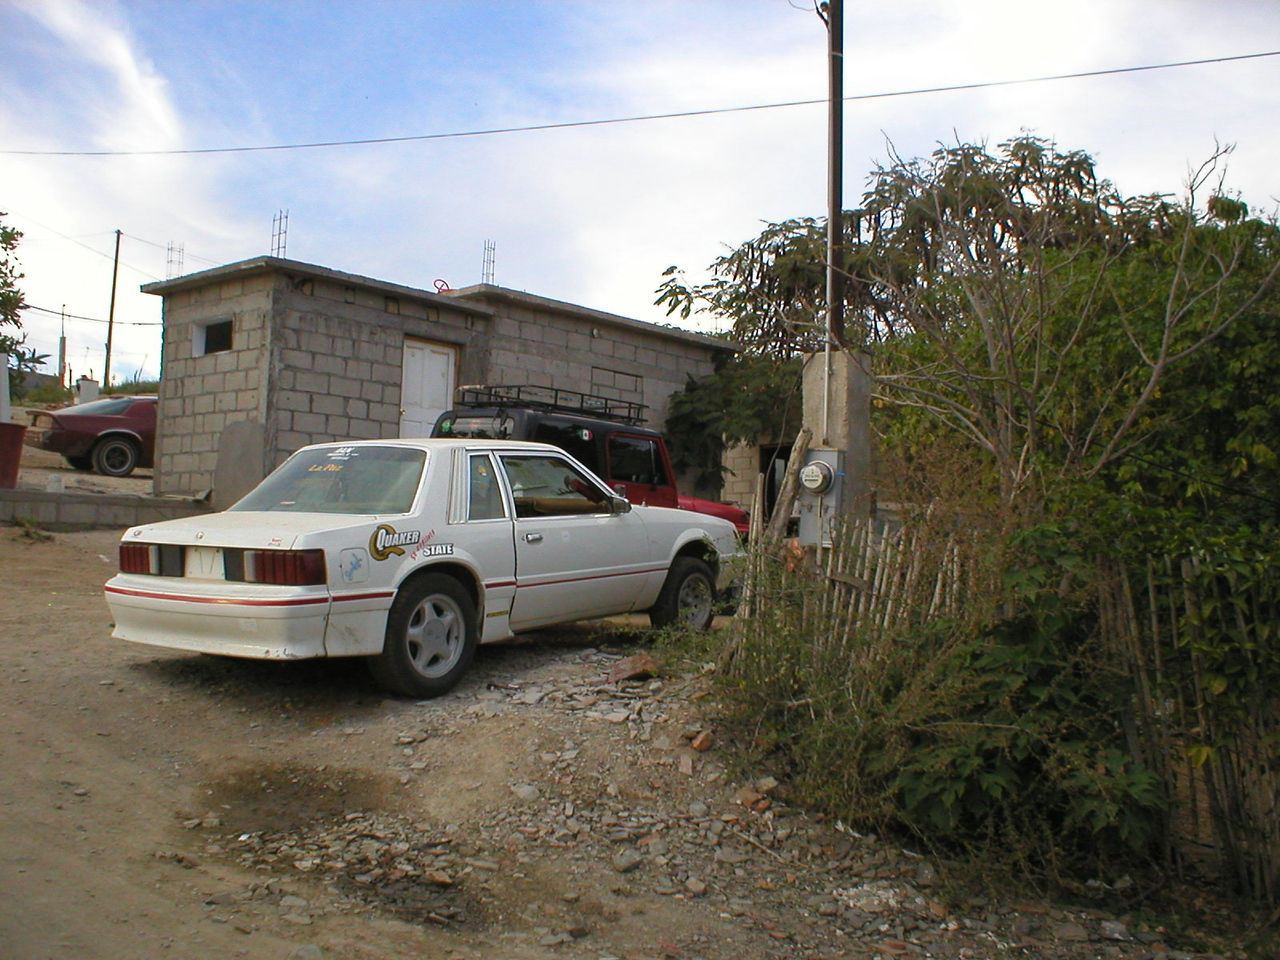 Mexican Mechanic:<br /> I'm off on the two mile hike to Cristian's house where my jeep will be ready. His sister has a house just like this behind his with a court yard in between. Mari's house is just up the hill. Cristian does all his work along side his house. He recently bought a lot up the road on a hill for $1,800 and is going to have a new house with several car stalls for his business.